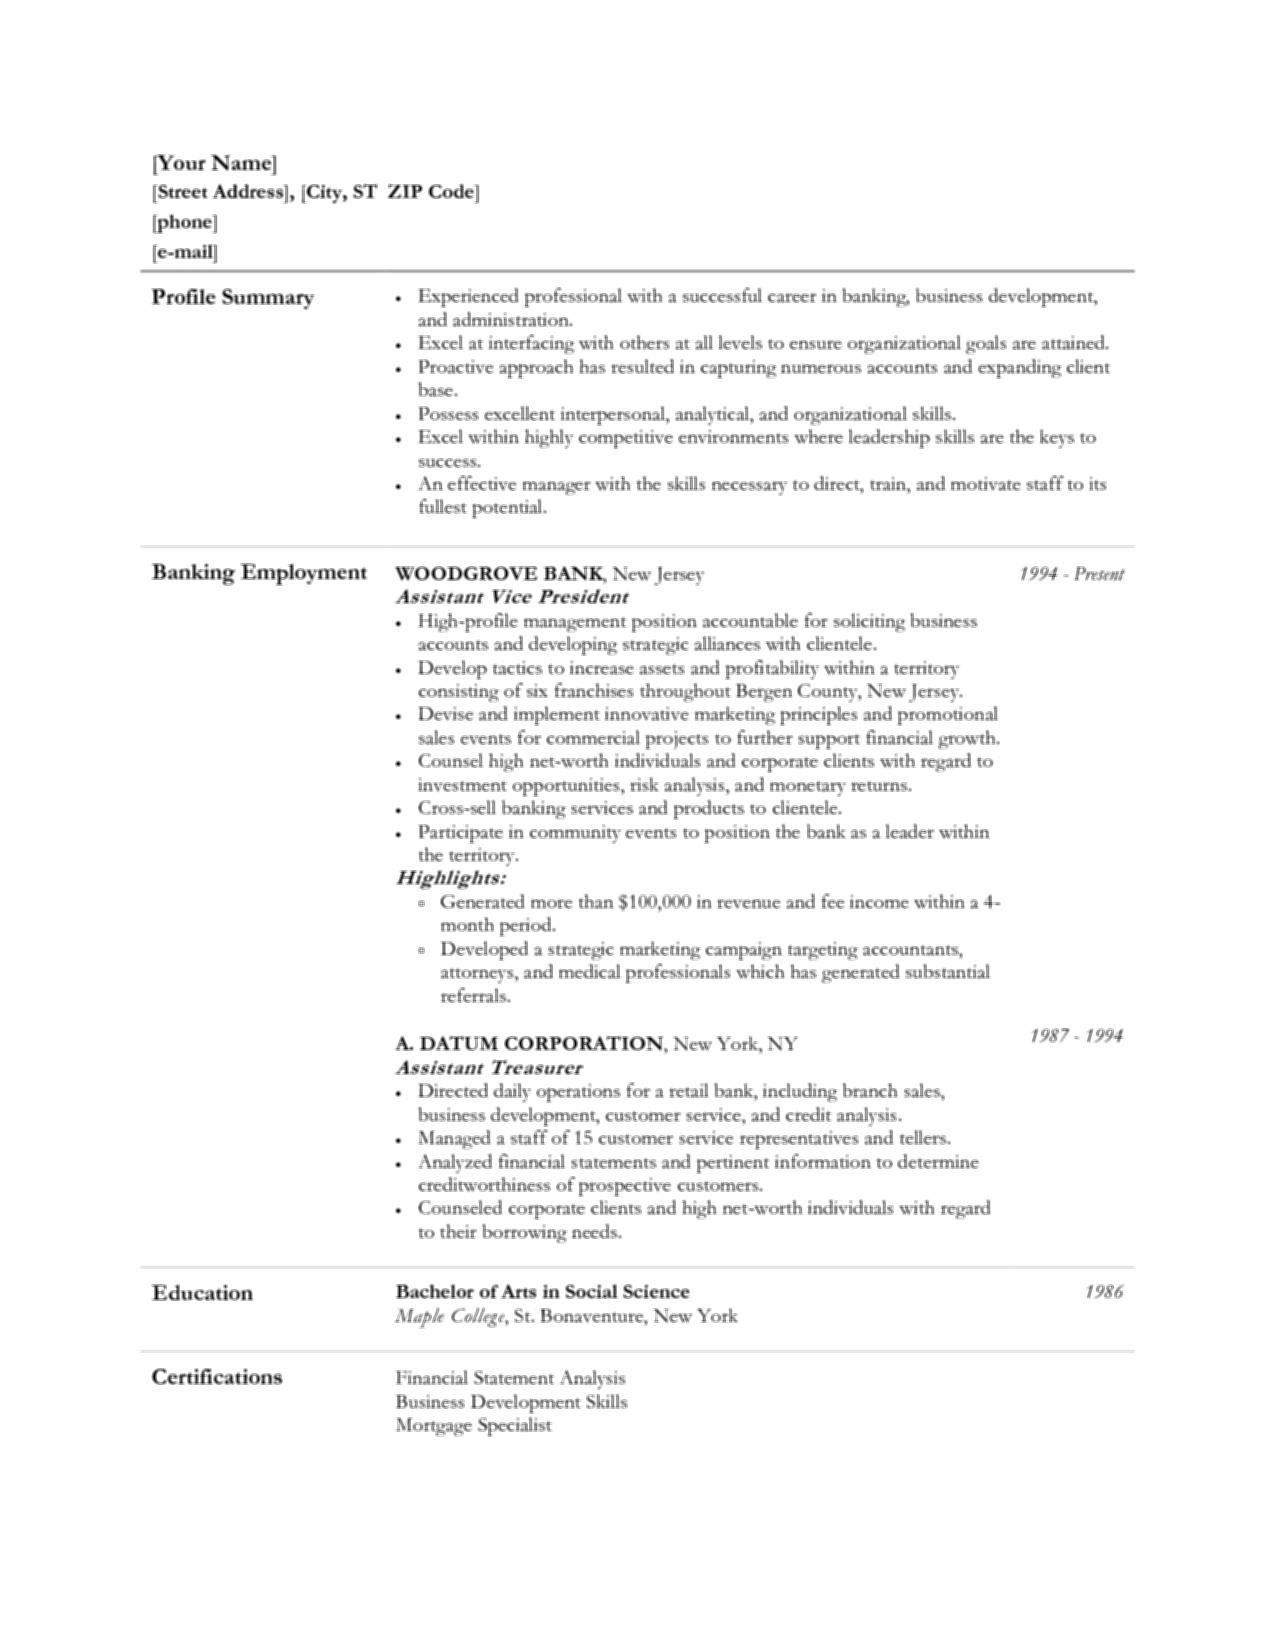 Resume Objective For Customer Service Banking Job Kizi Game Statement Bank Teller Examples Personal